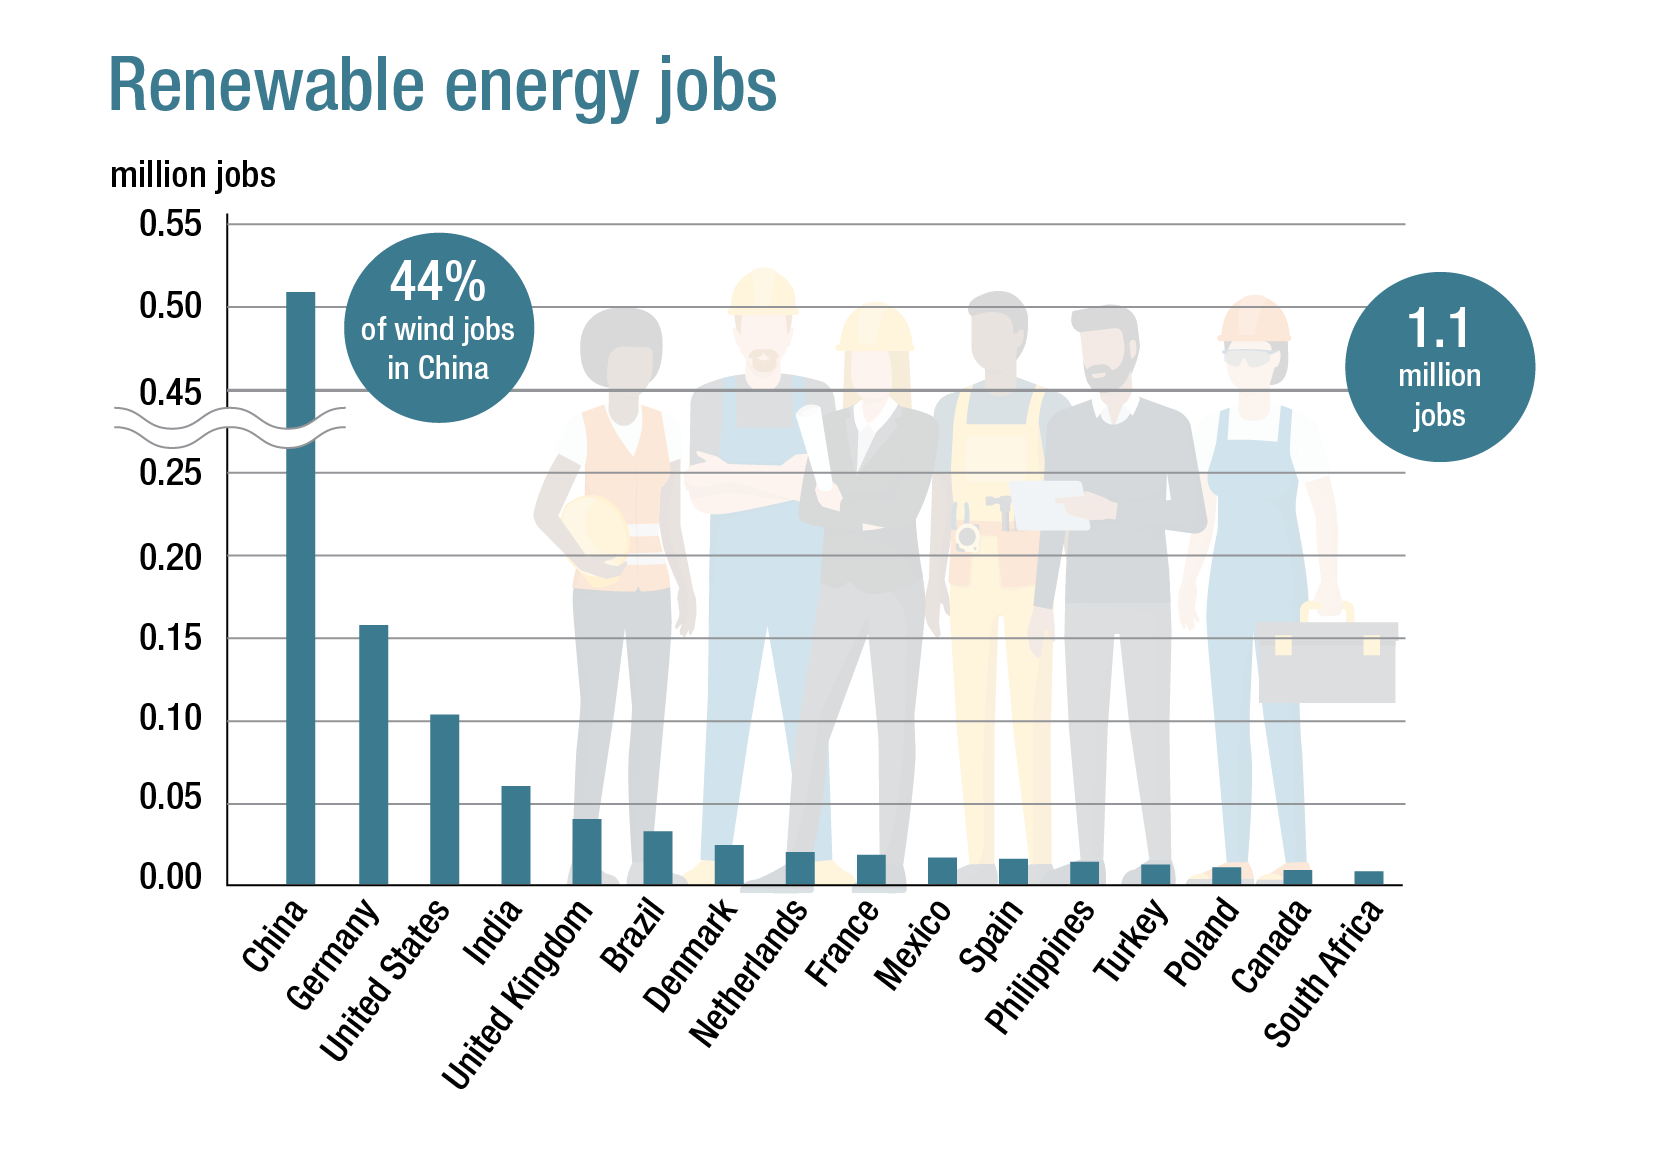 Renewable energy jobs world-wide